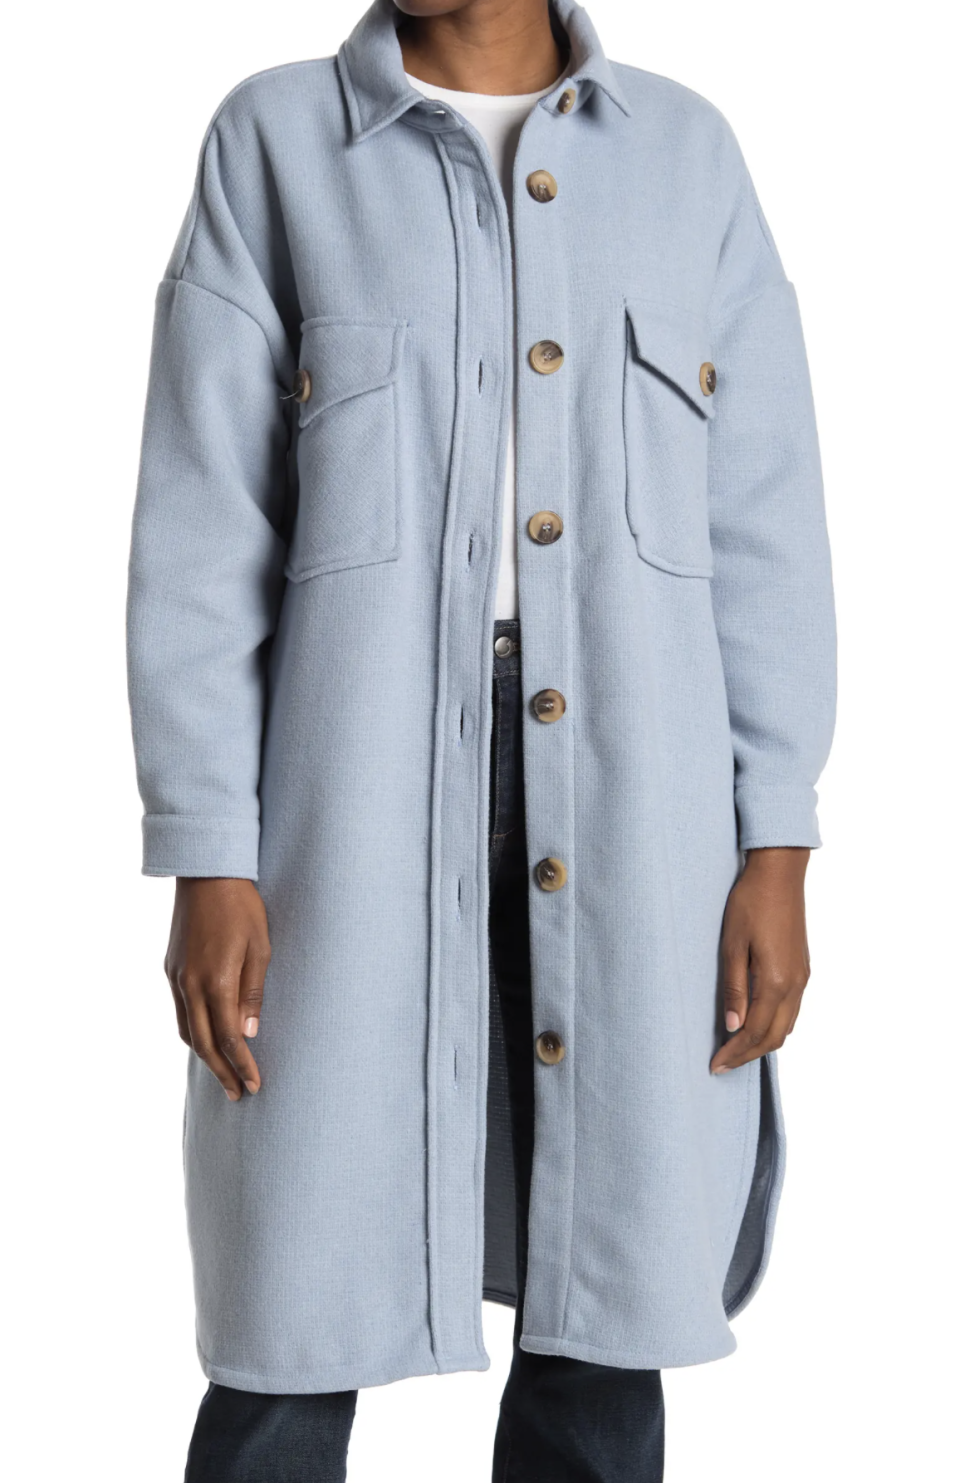 light blue long sleeve RDI Solid Button Front Long Shacket